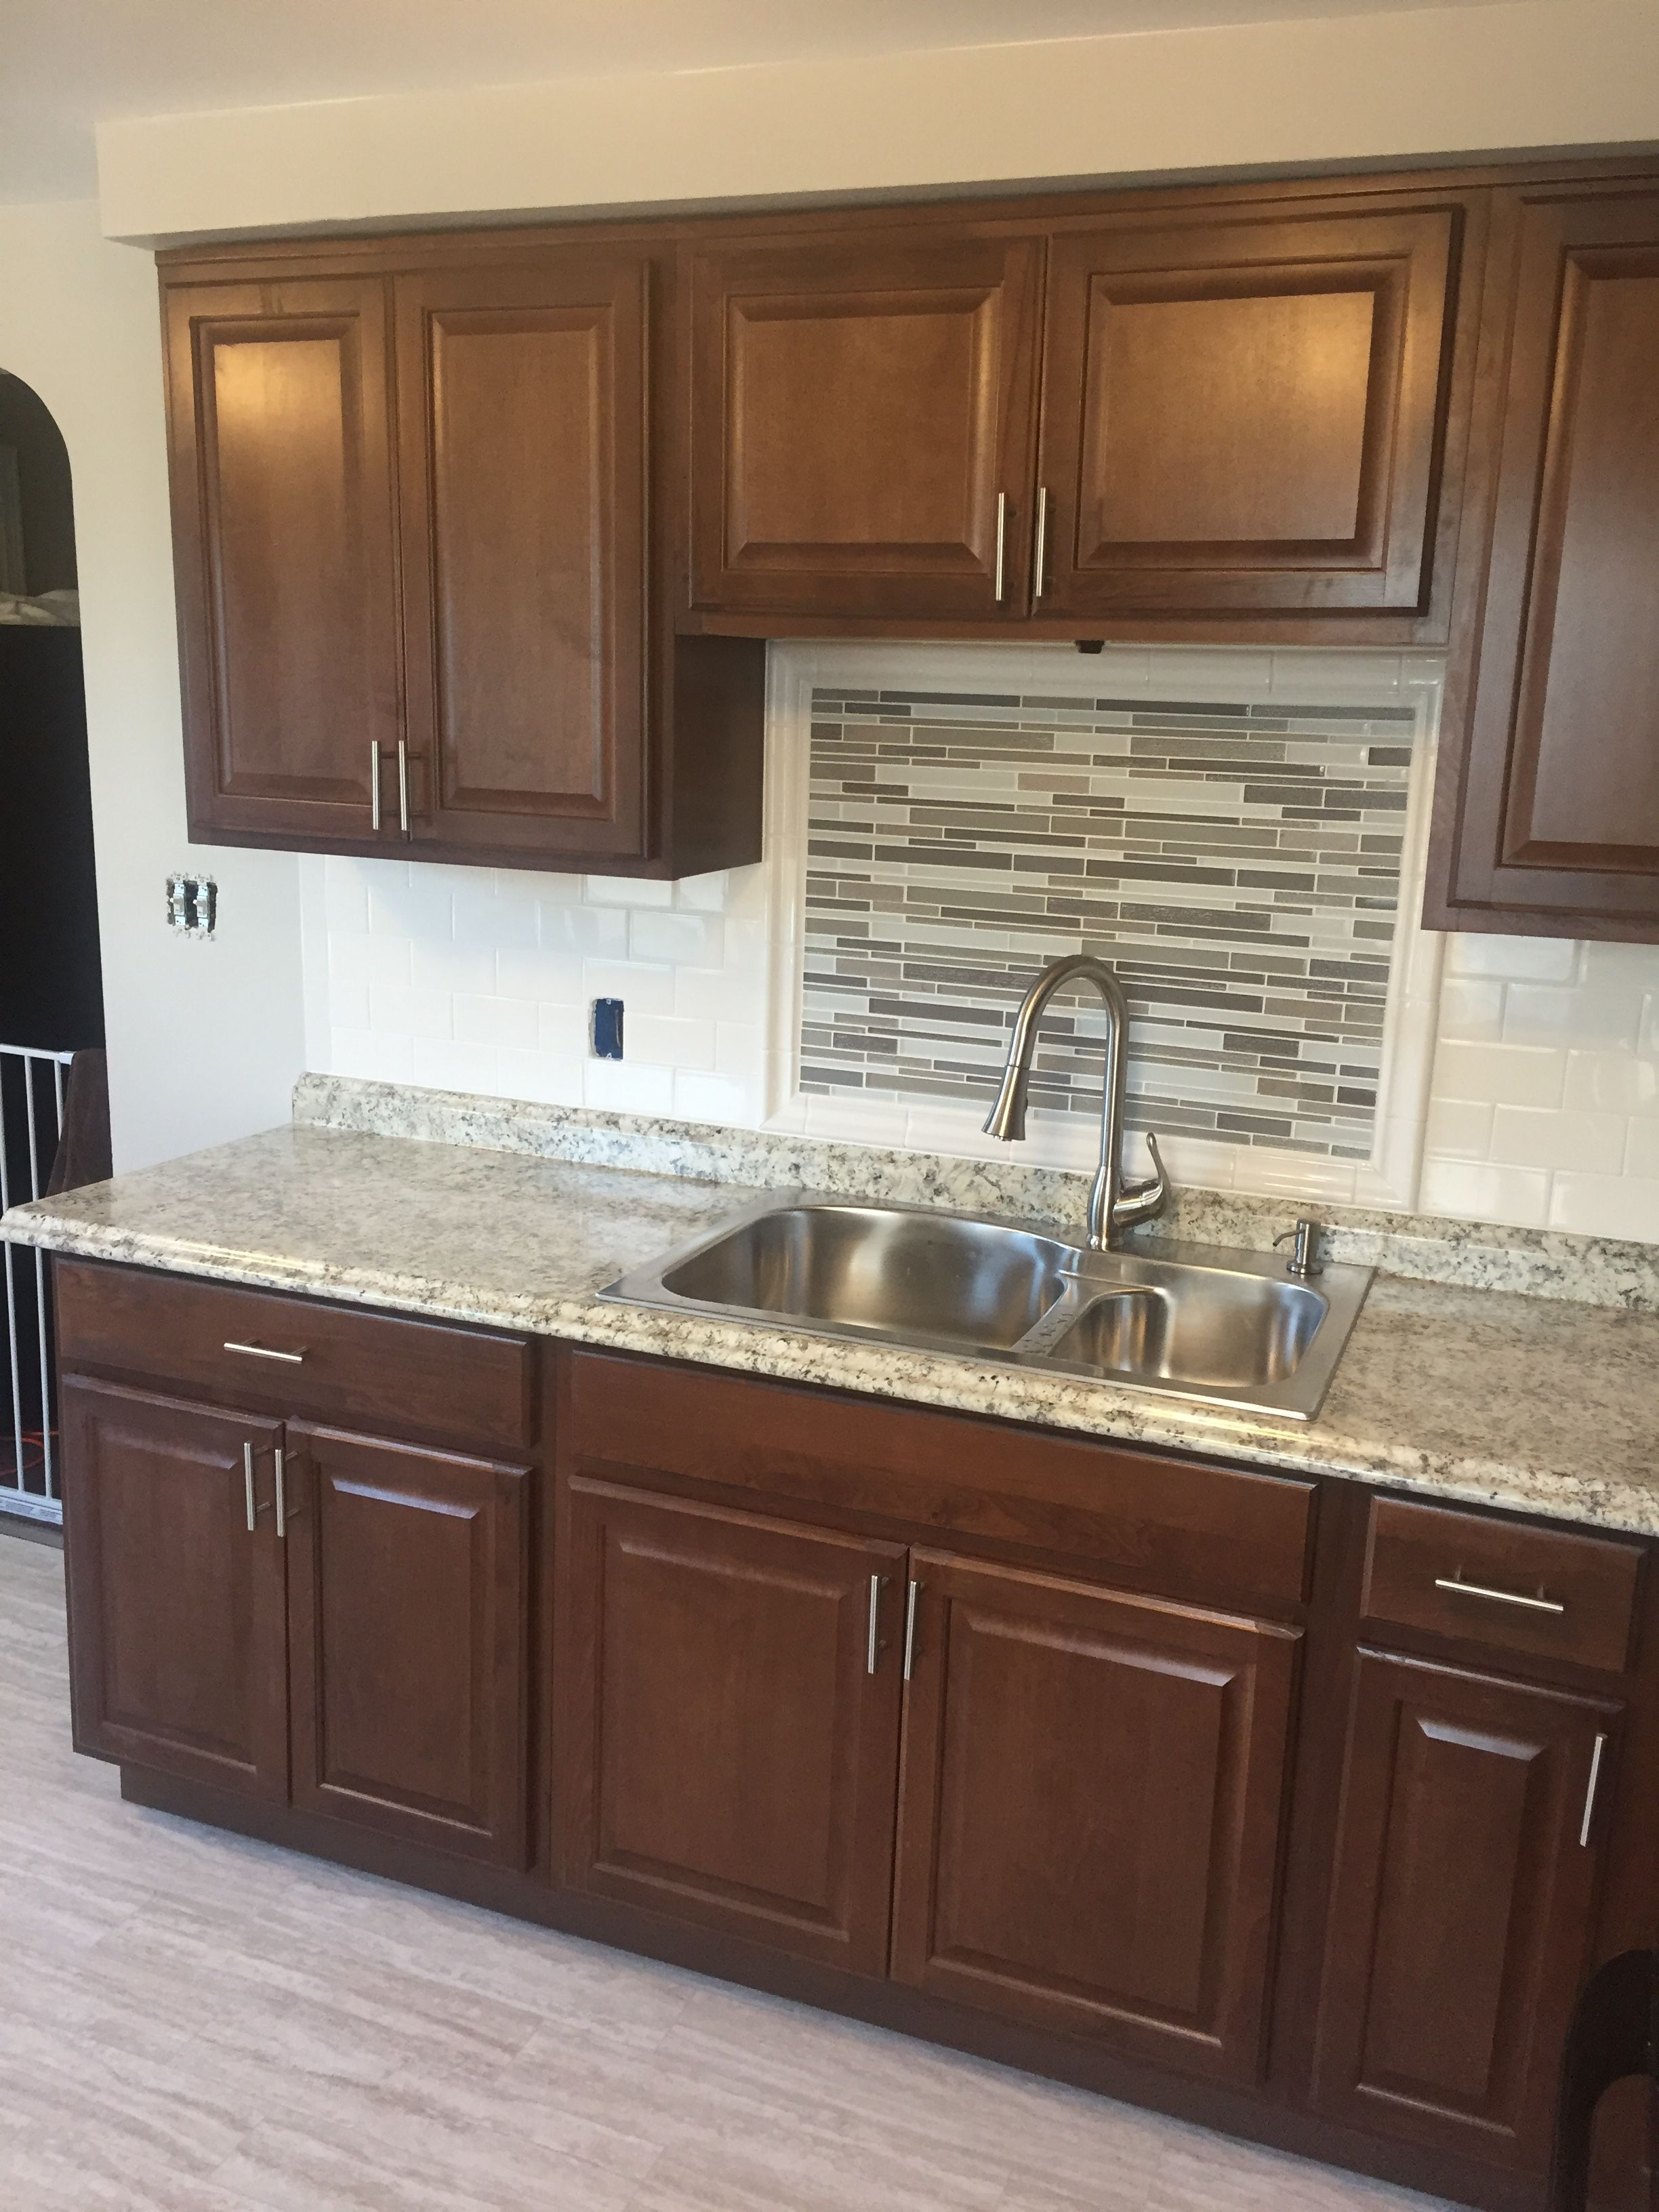 Hampton Bay cognac kitchen cabinets with subway tile backsplash and ...